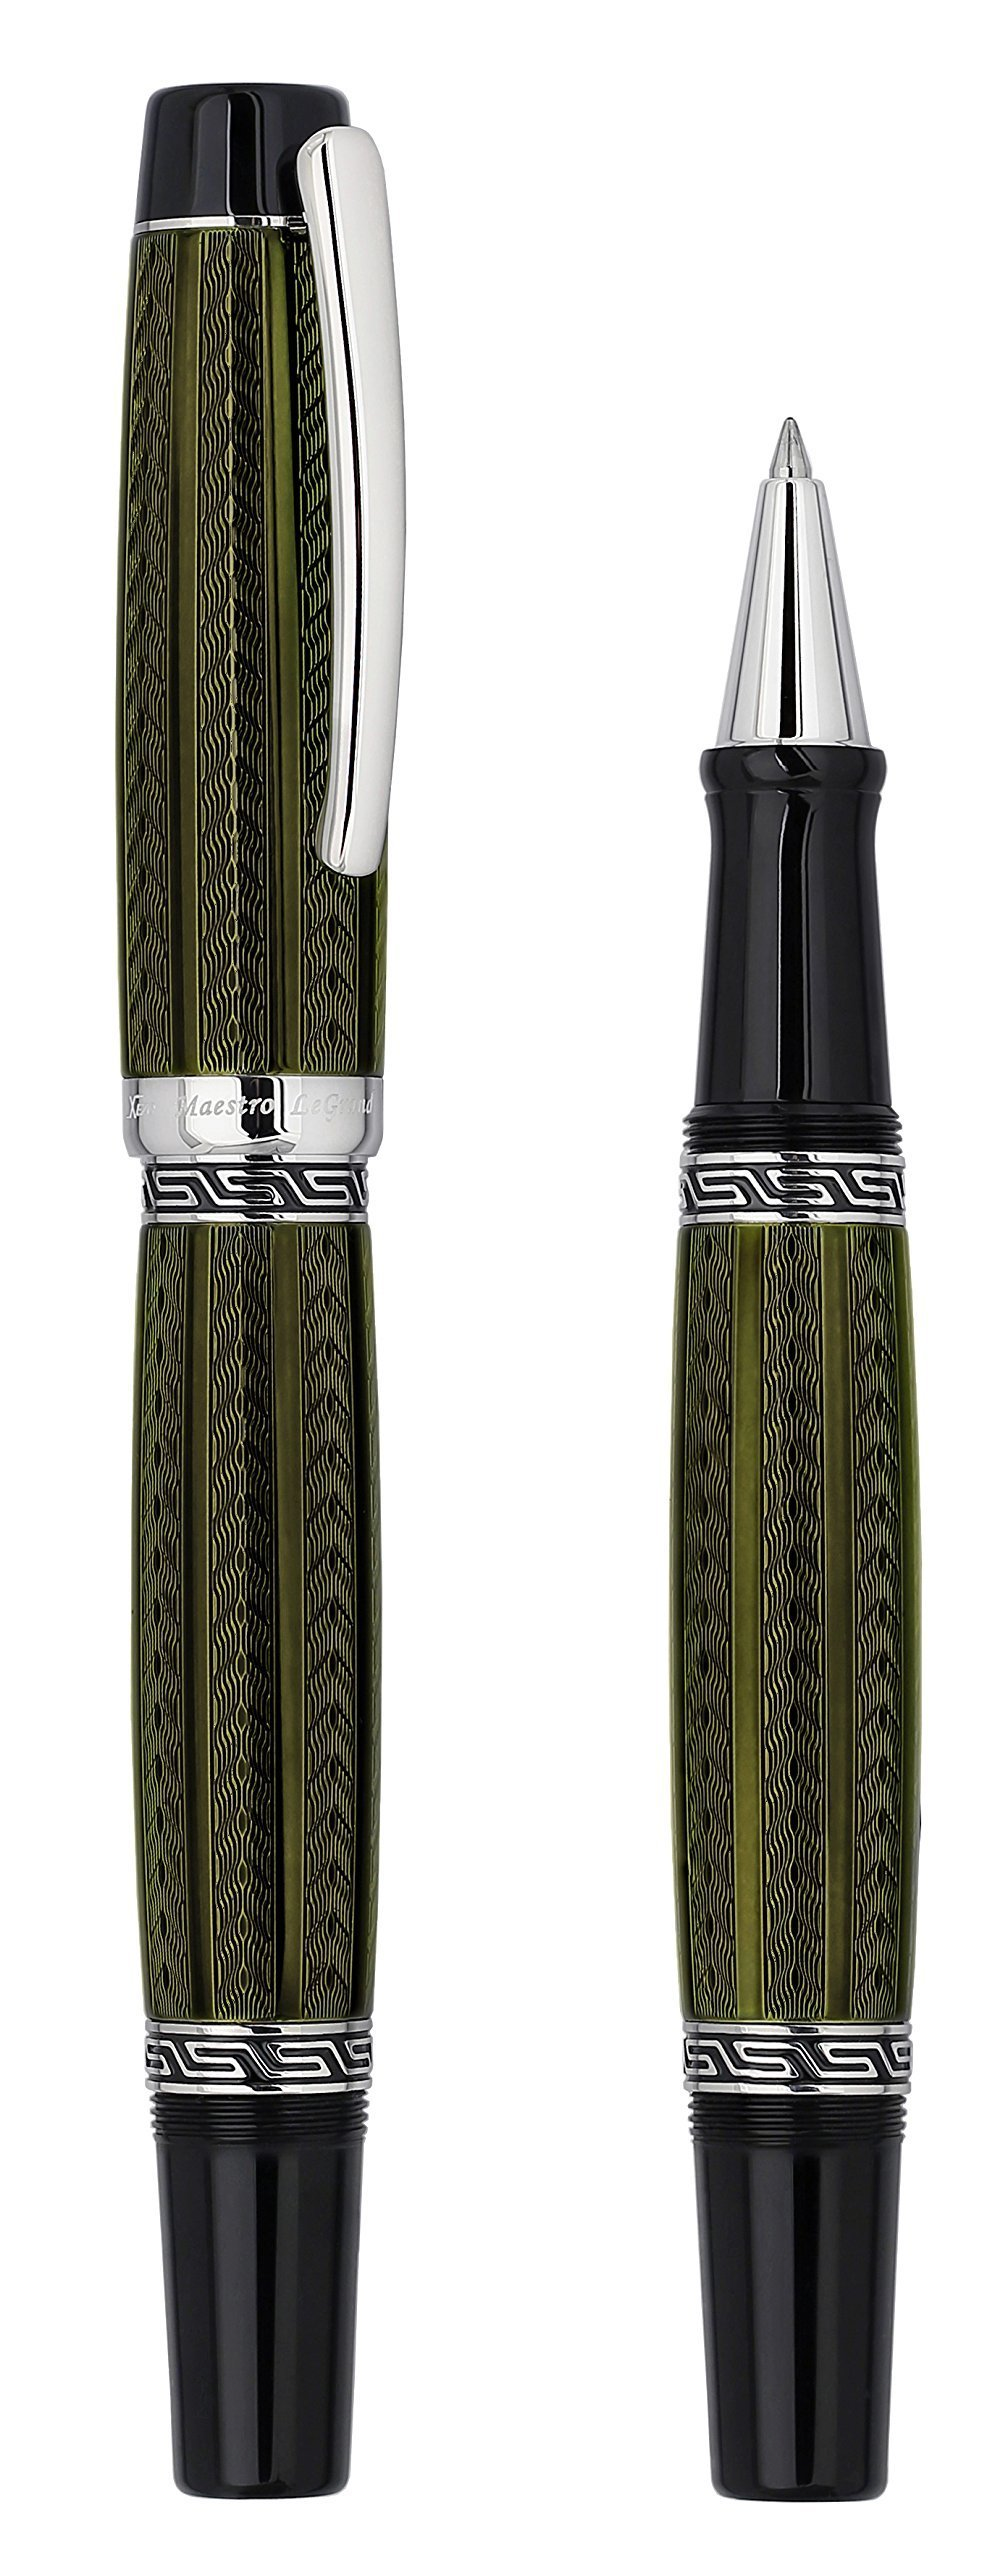 Xezo Maestro LeGrand Diamond Cut, Lacquered, Platinum Plated Fine Rollerball Pen in Moldavite Color by Xezo Pens